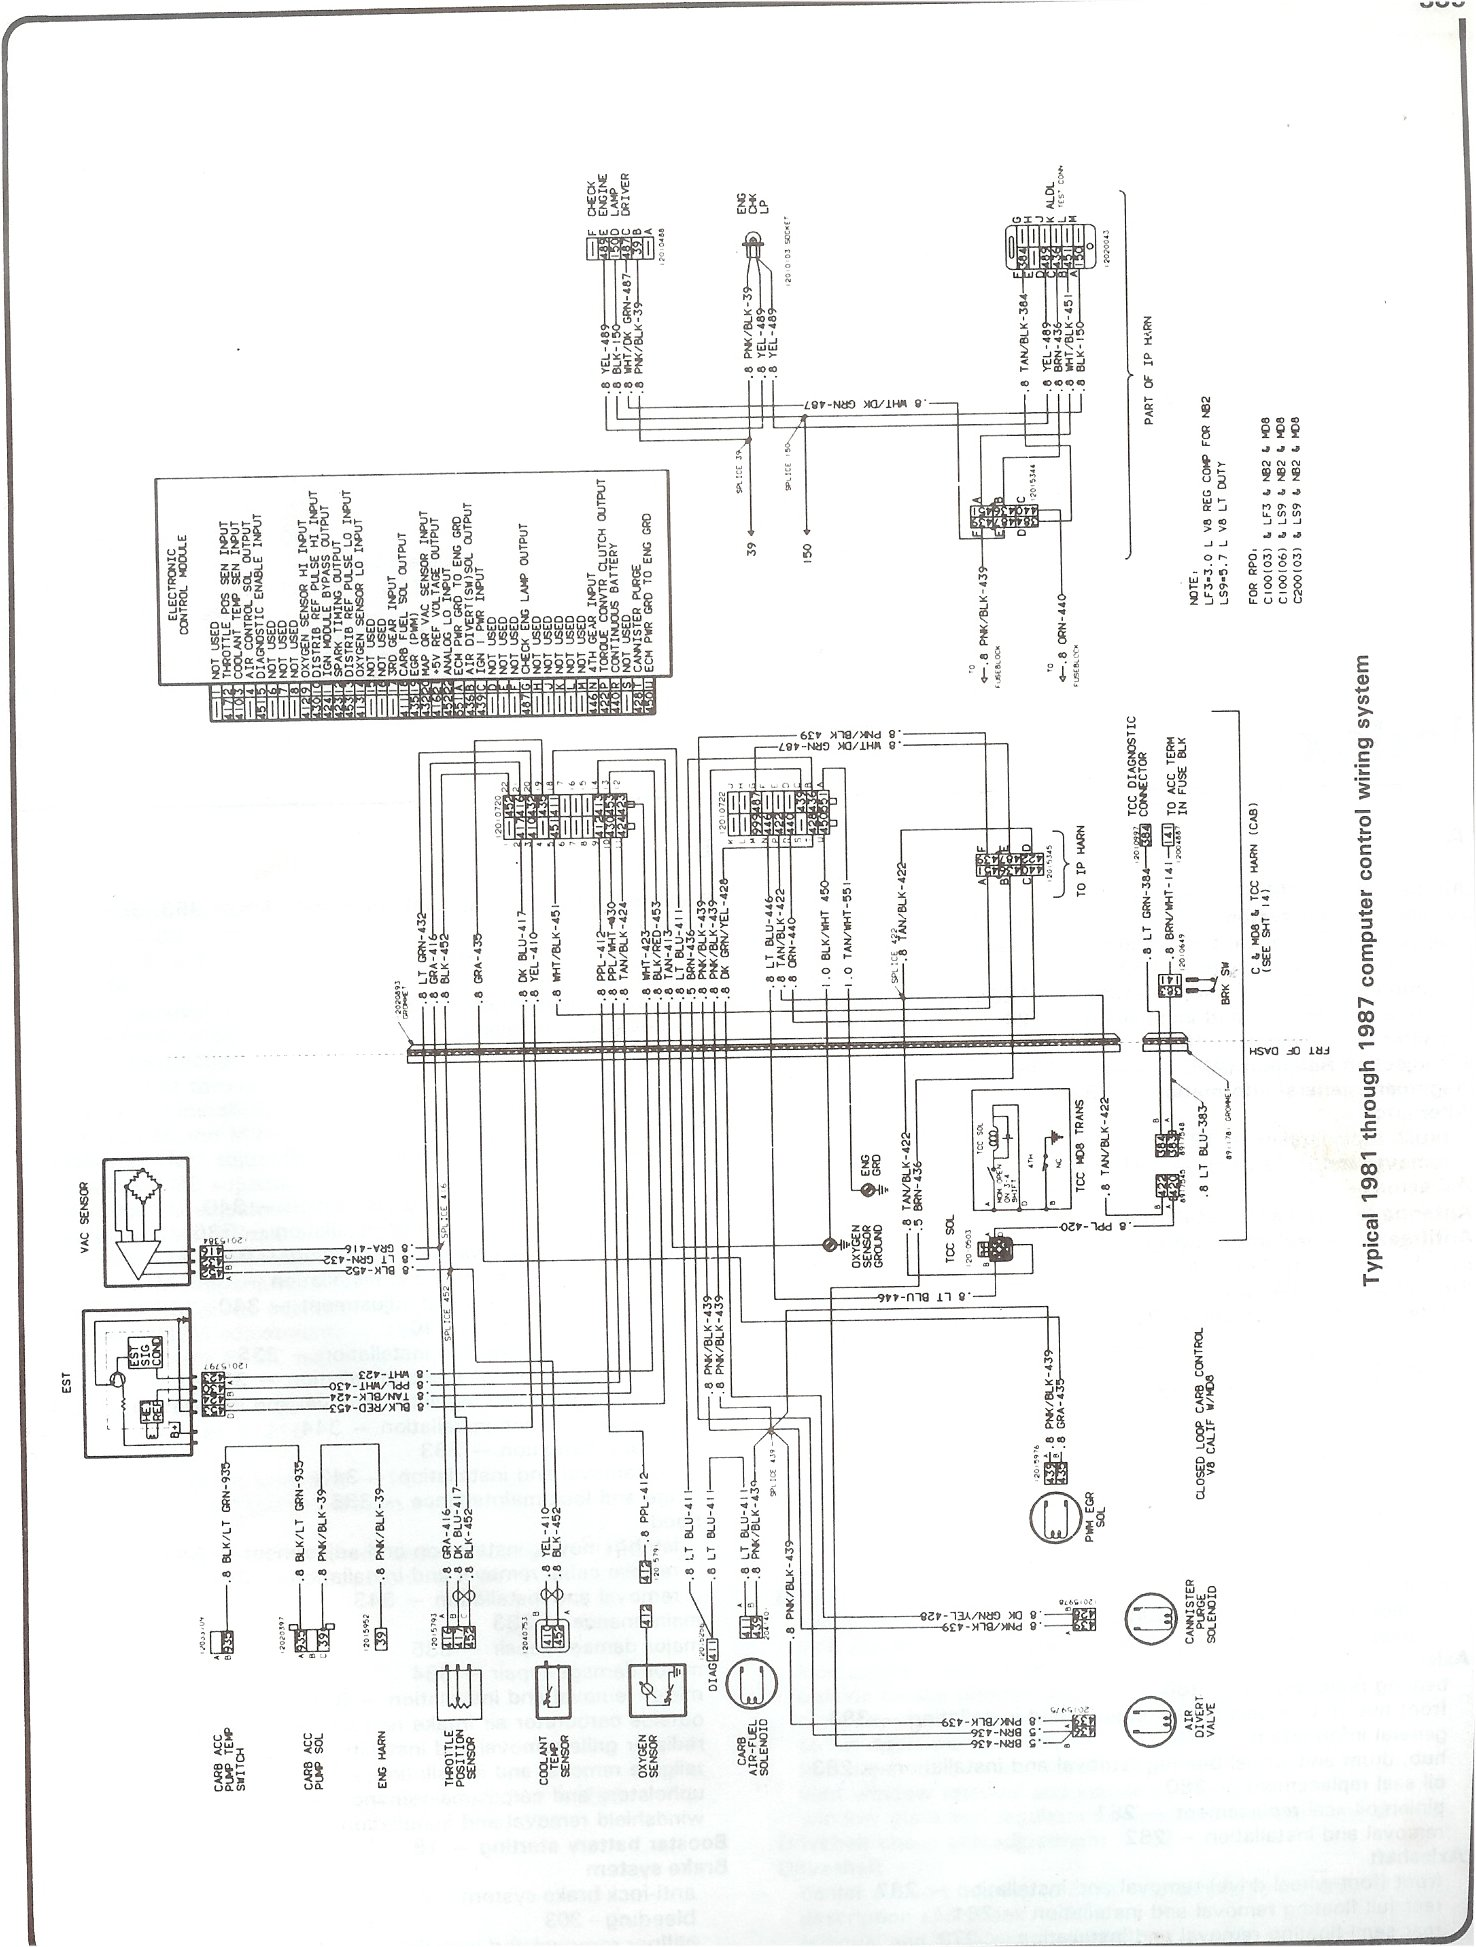 hight resolution of 1976 chevy 350 wiring diagram simple wiring diagrams 1 wire alternator wiring diagram for 1970 chevy truck 1975 chevy wiring diagram 350